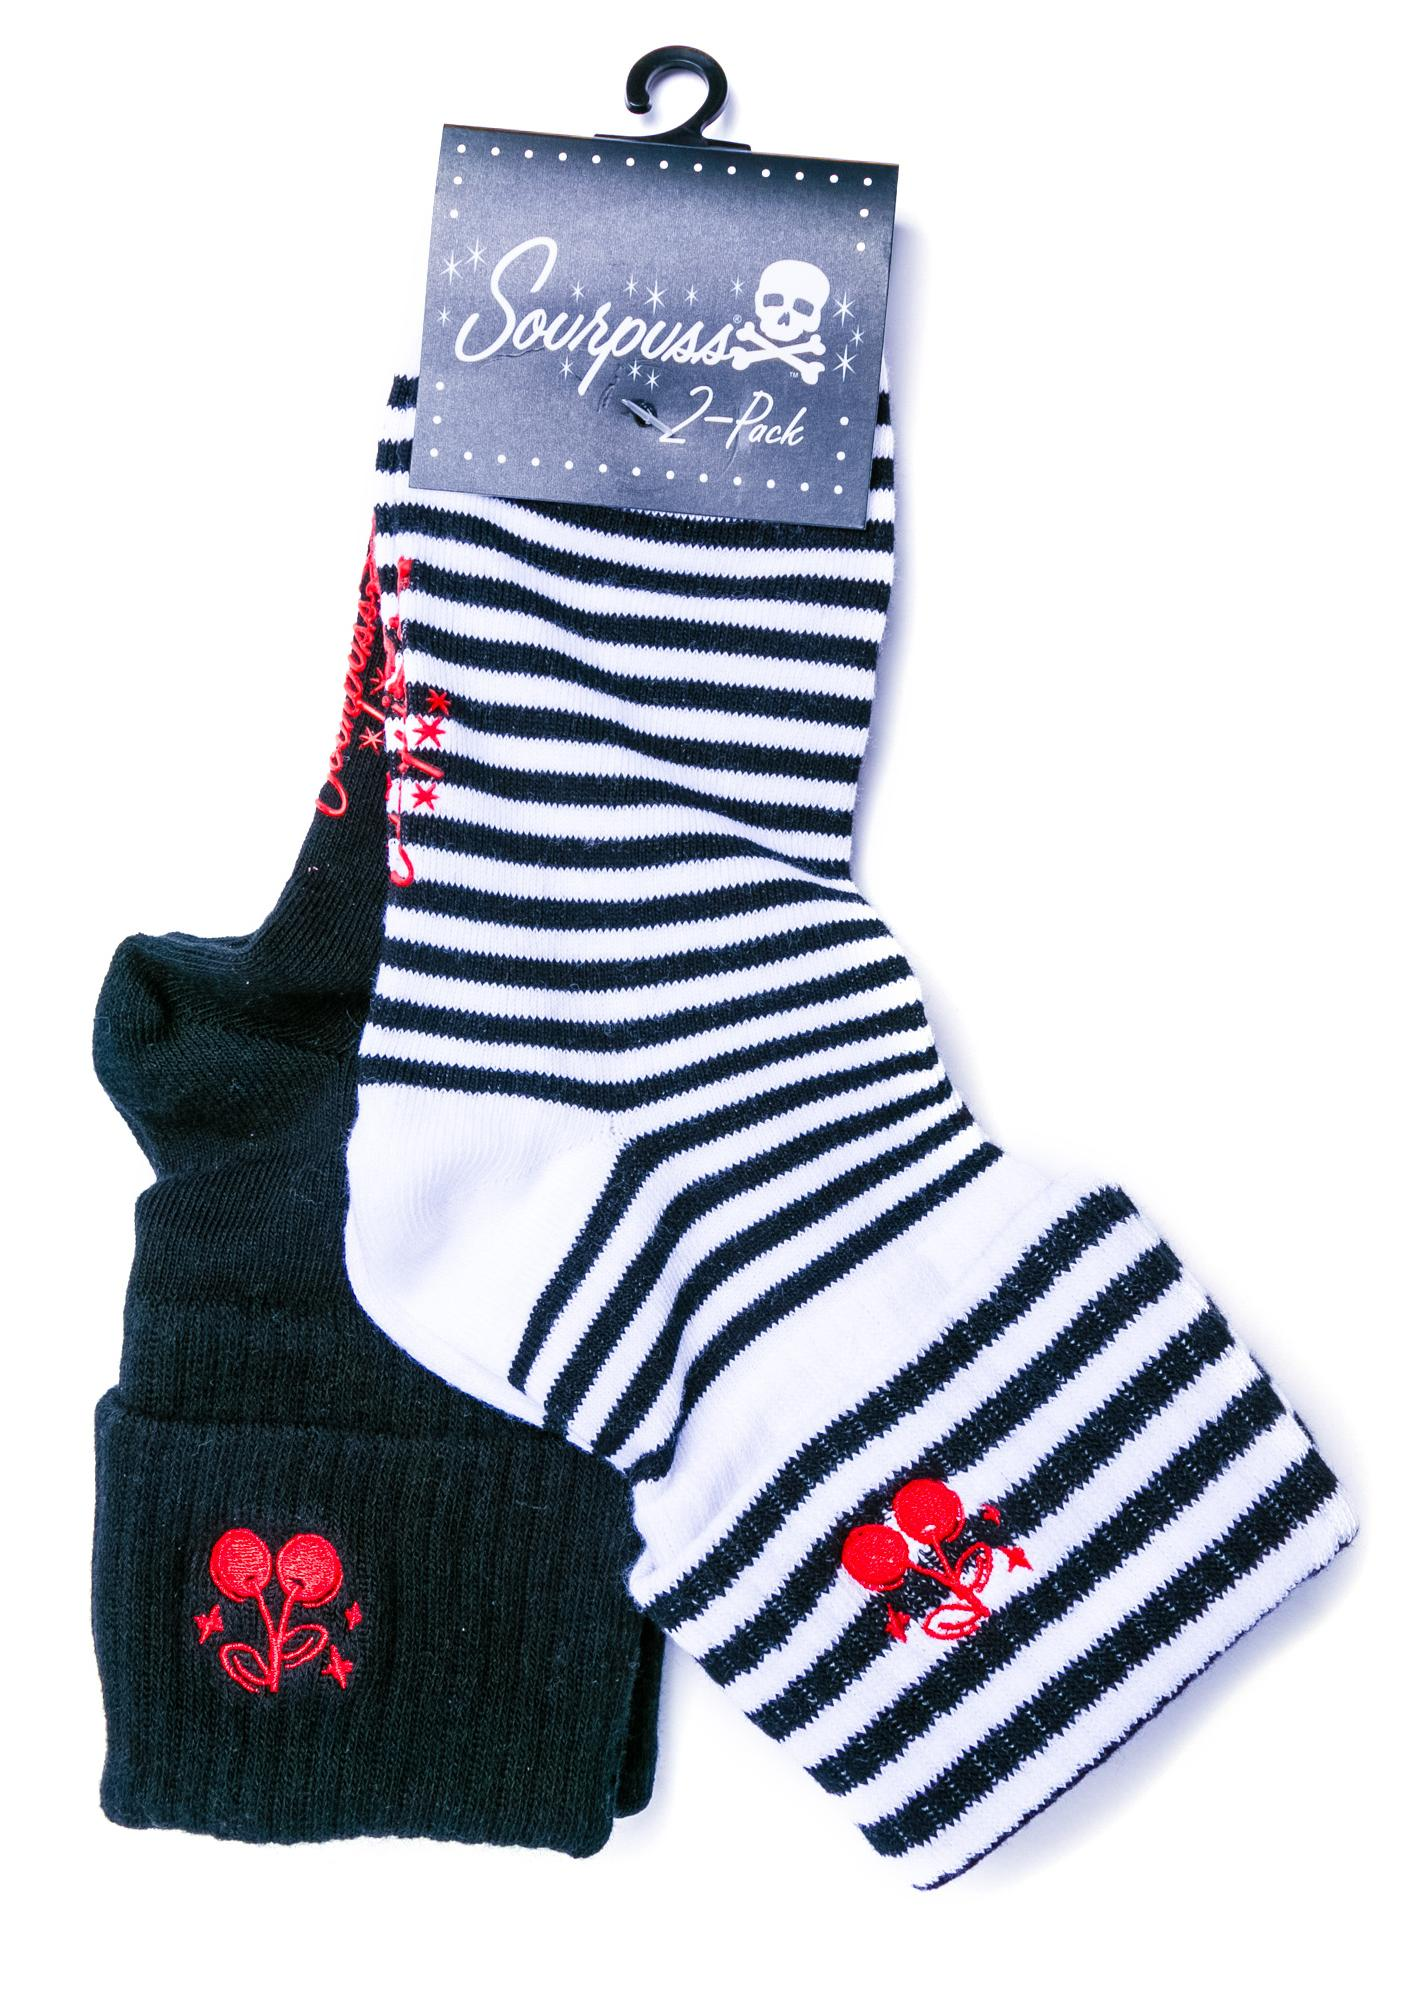 Sourpuss Clothing Cherries Socks Set